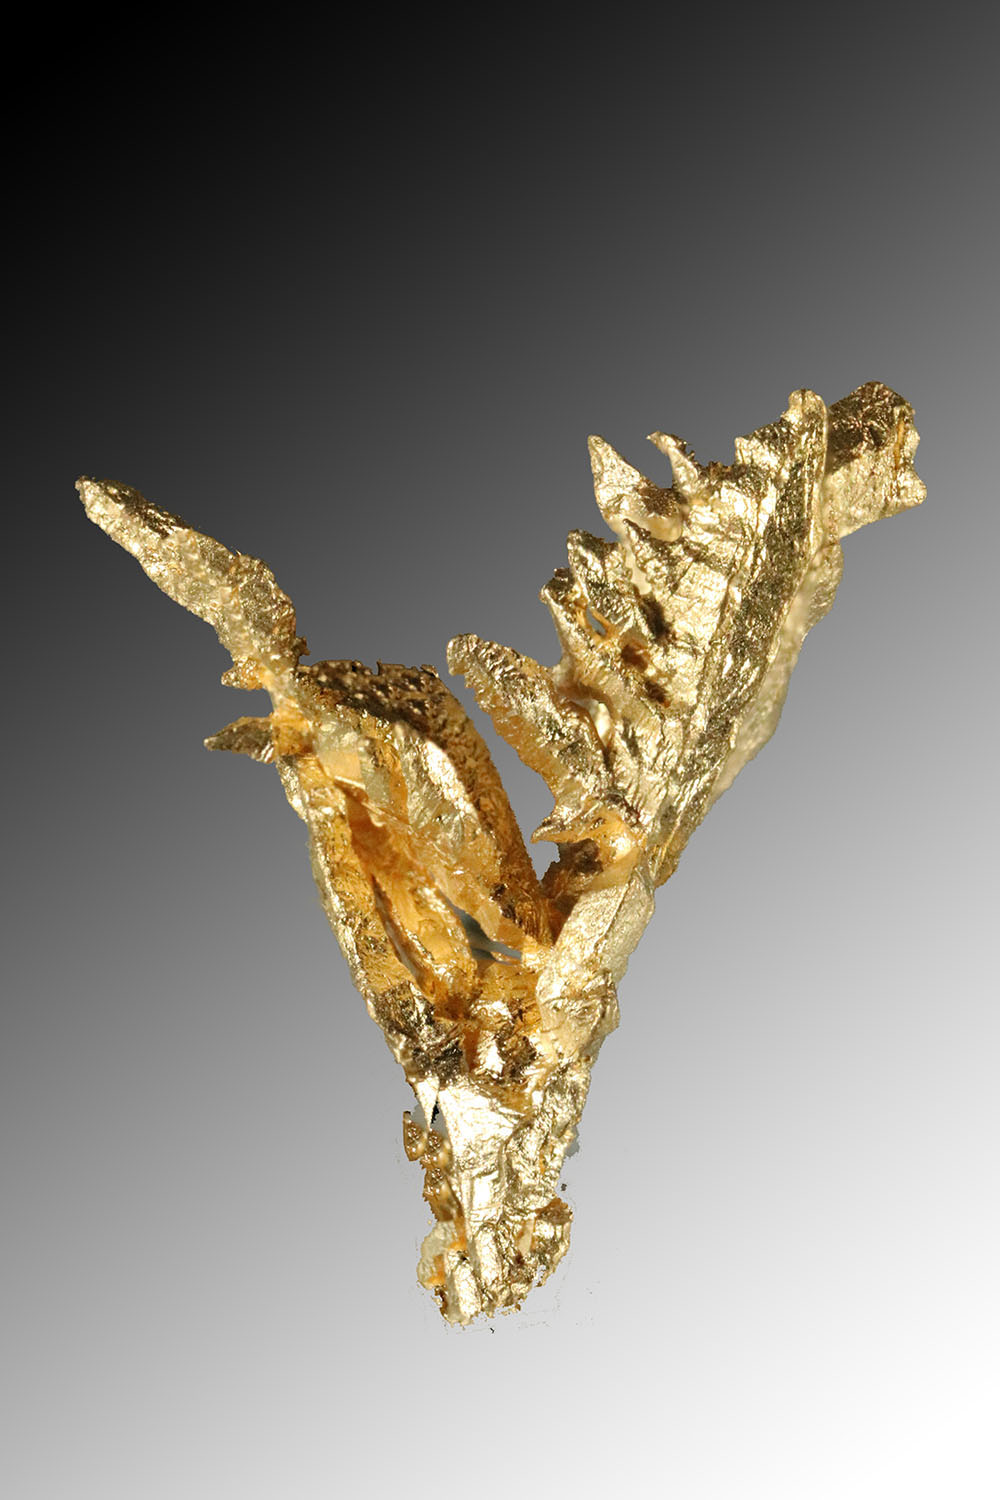 Faceted Natural Gold Crystal from Venezuela